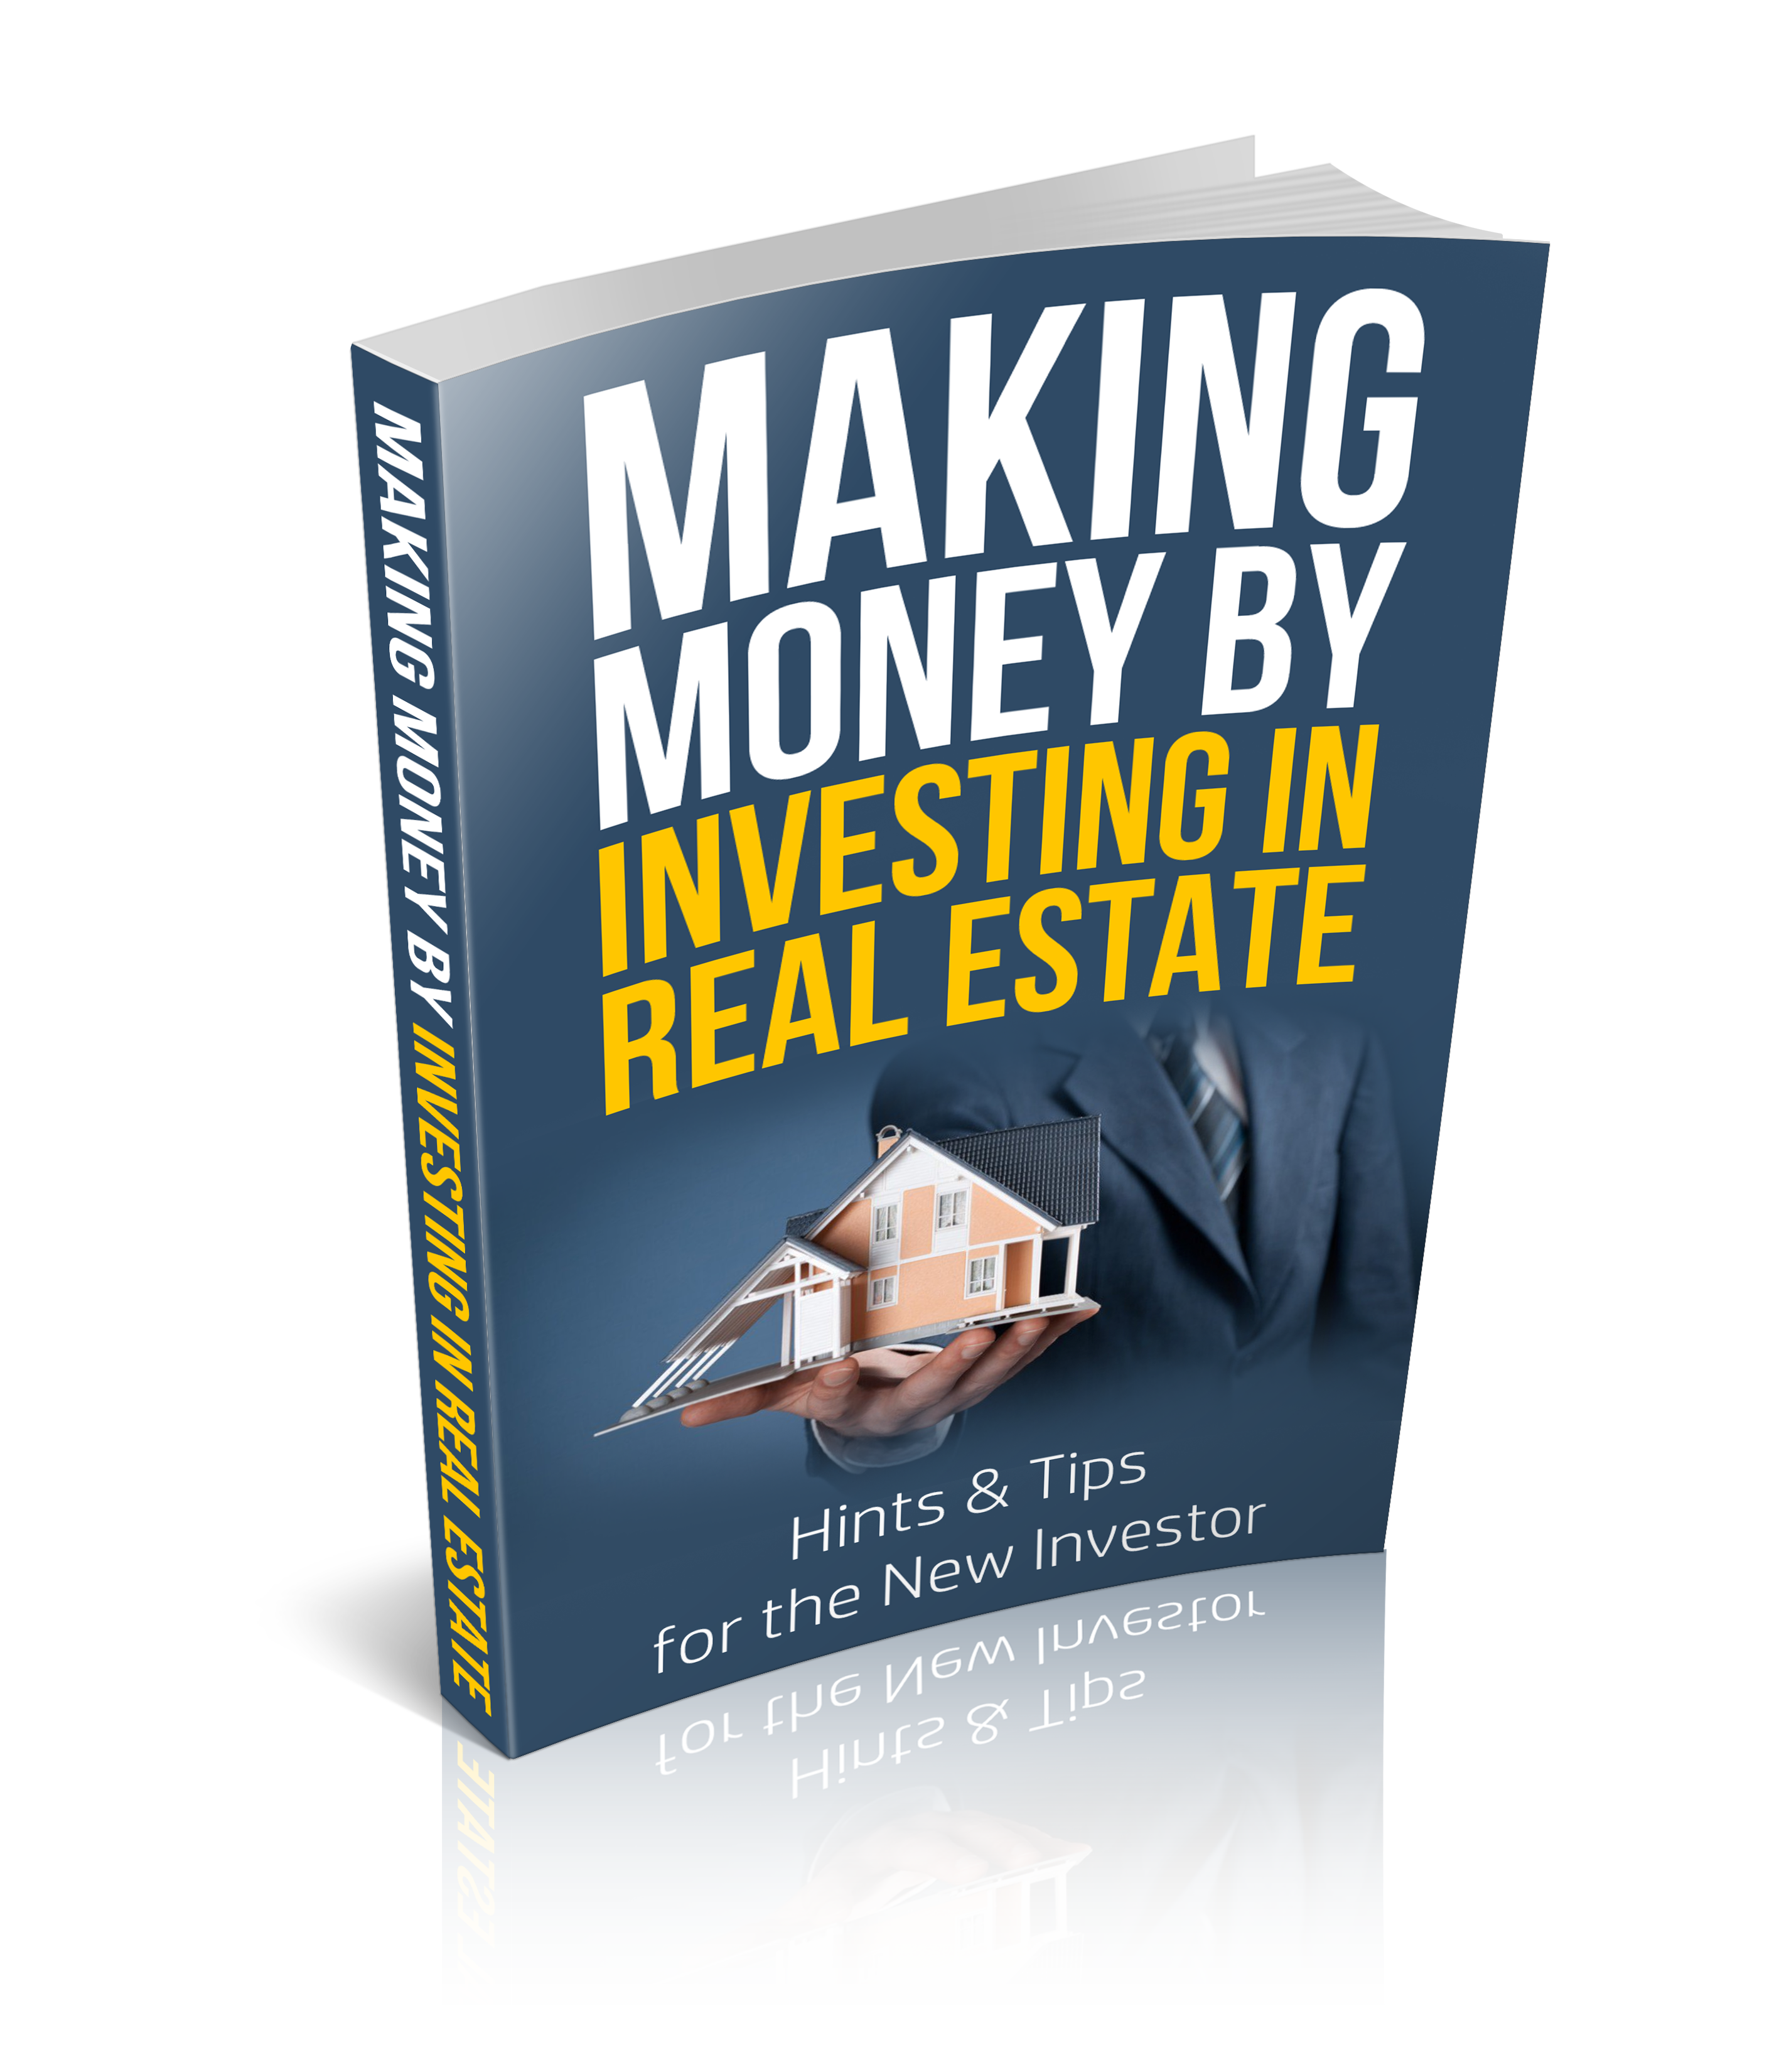 Making Money by Investing in Real Estate eBook Cover